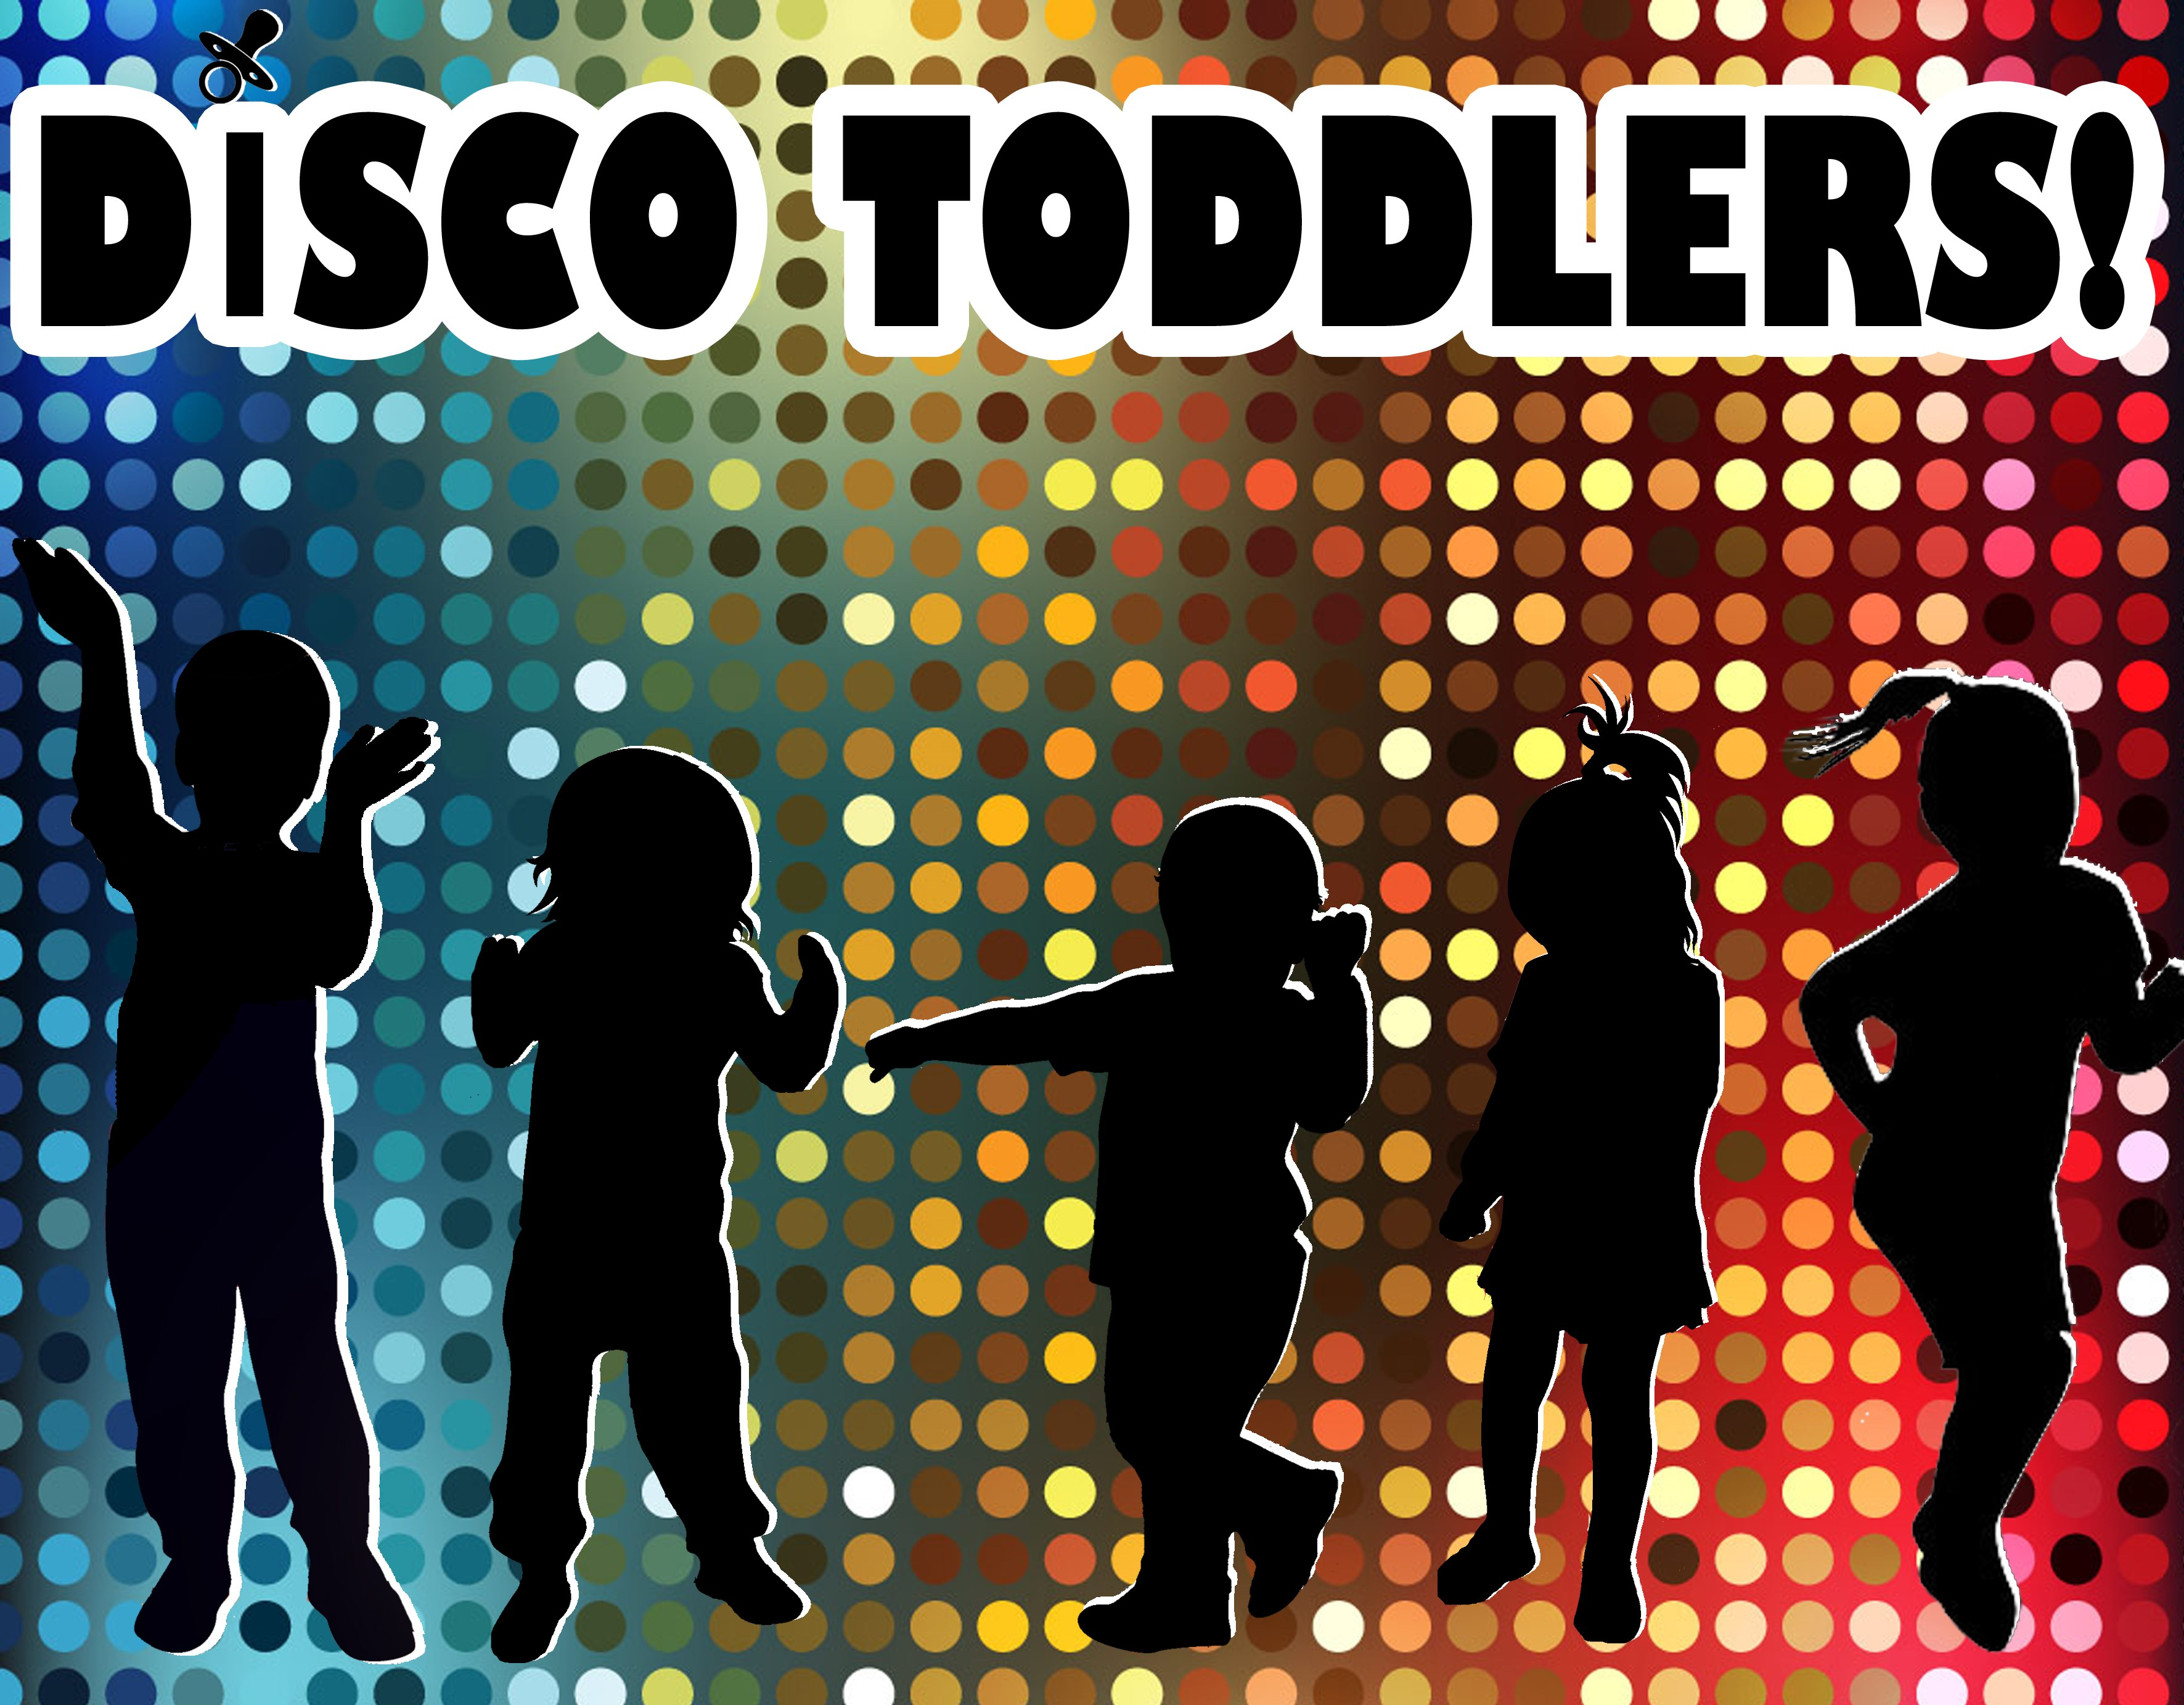 Disco Toddlers